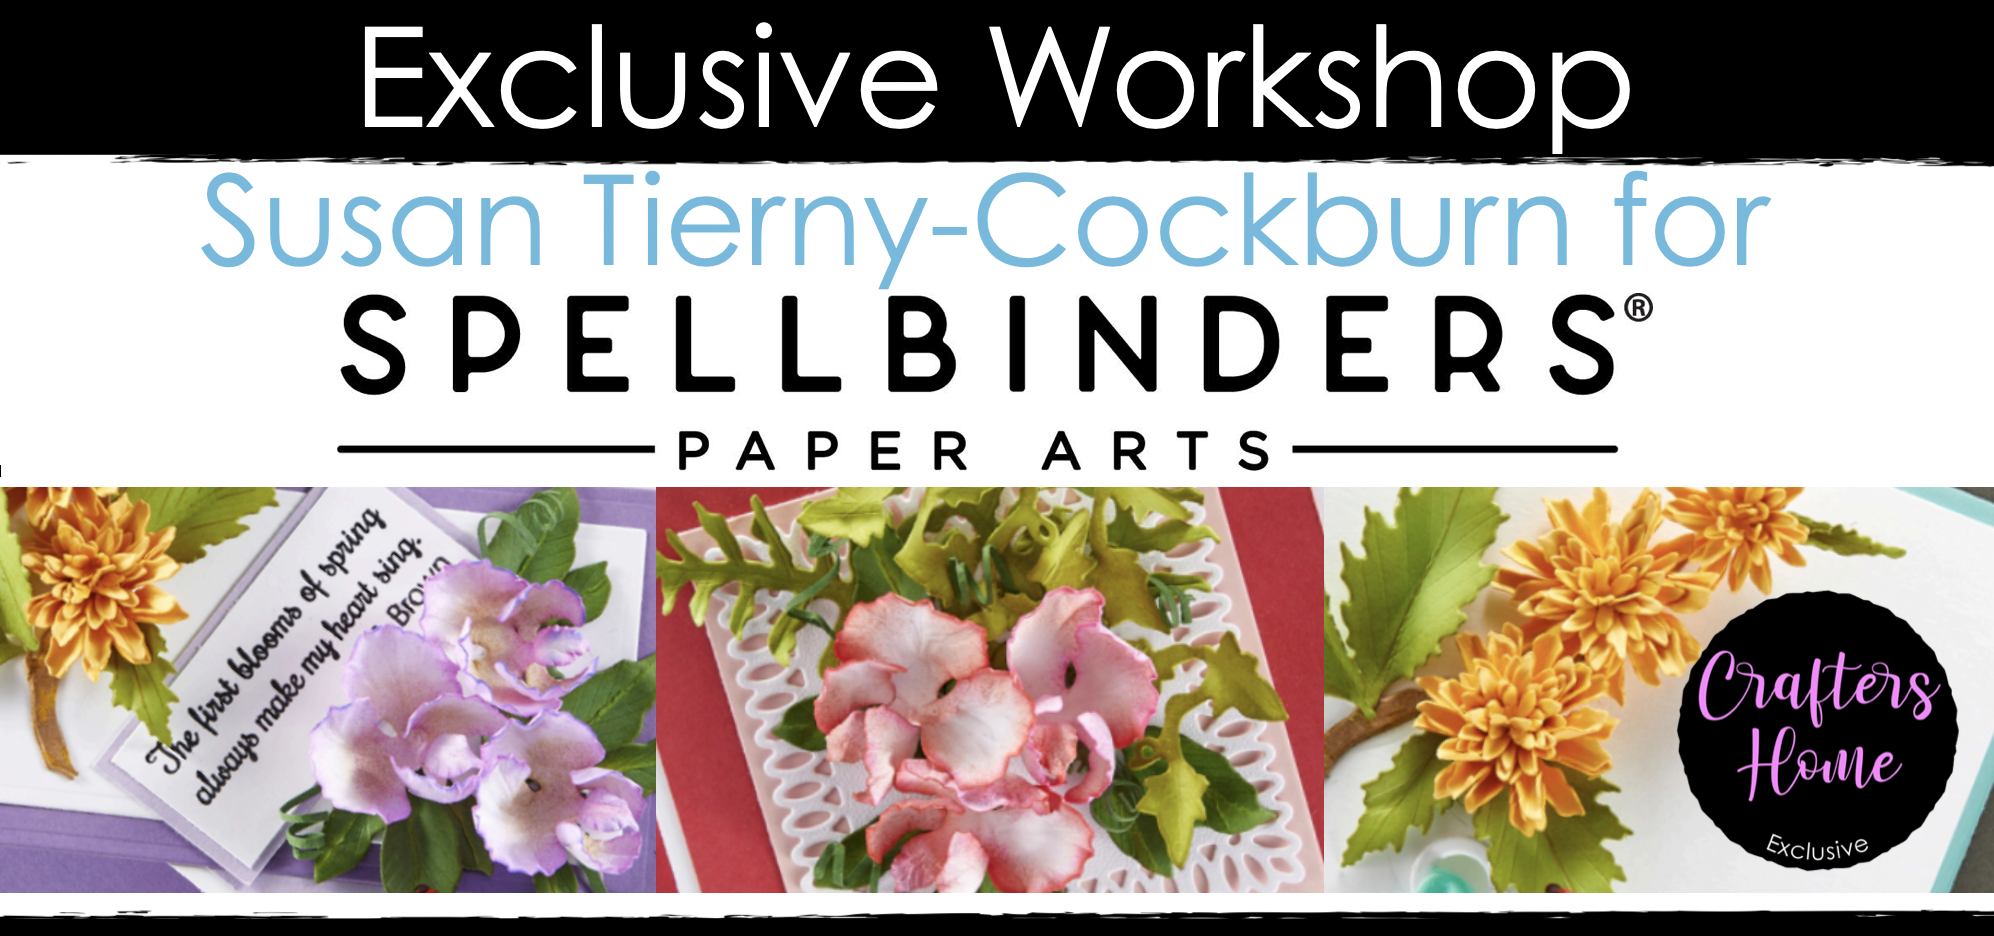 Spellbinders exclusive Fanciful Flowers class with Susan Tierny-Cockburn SOLD OUT